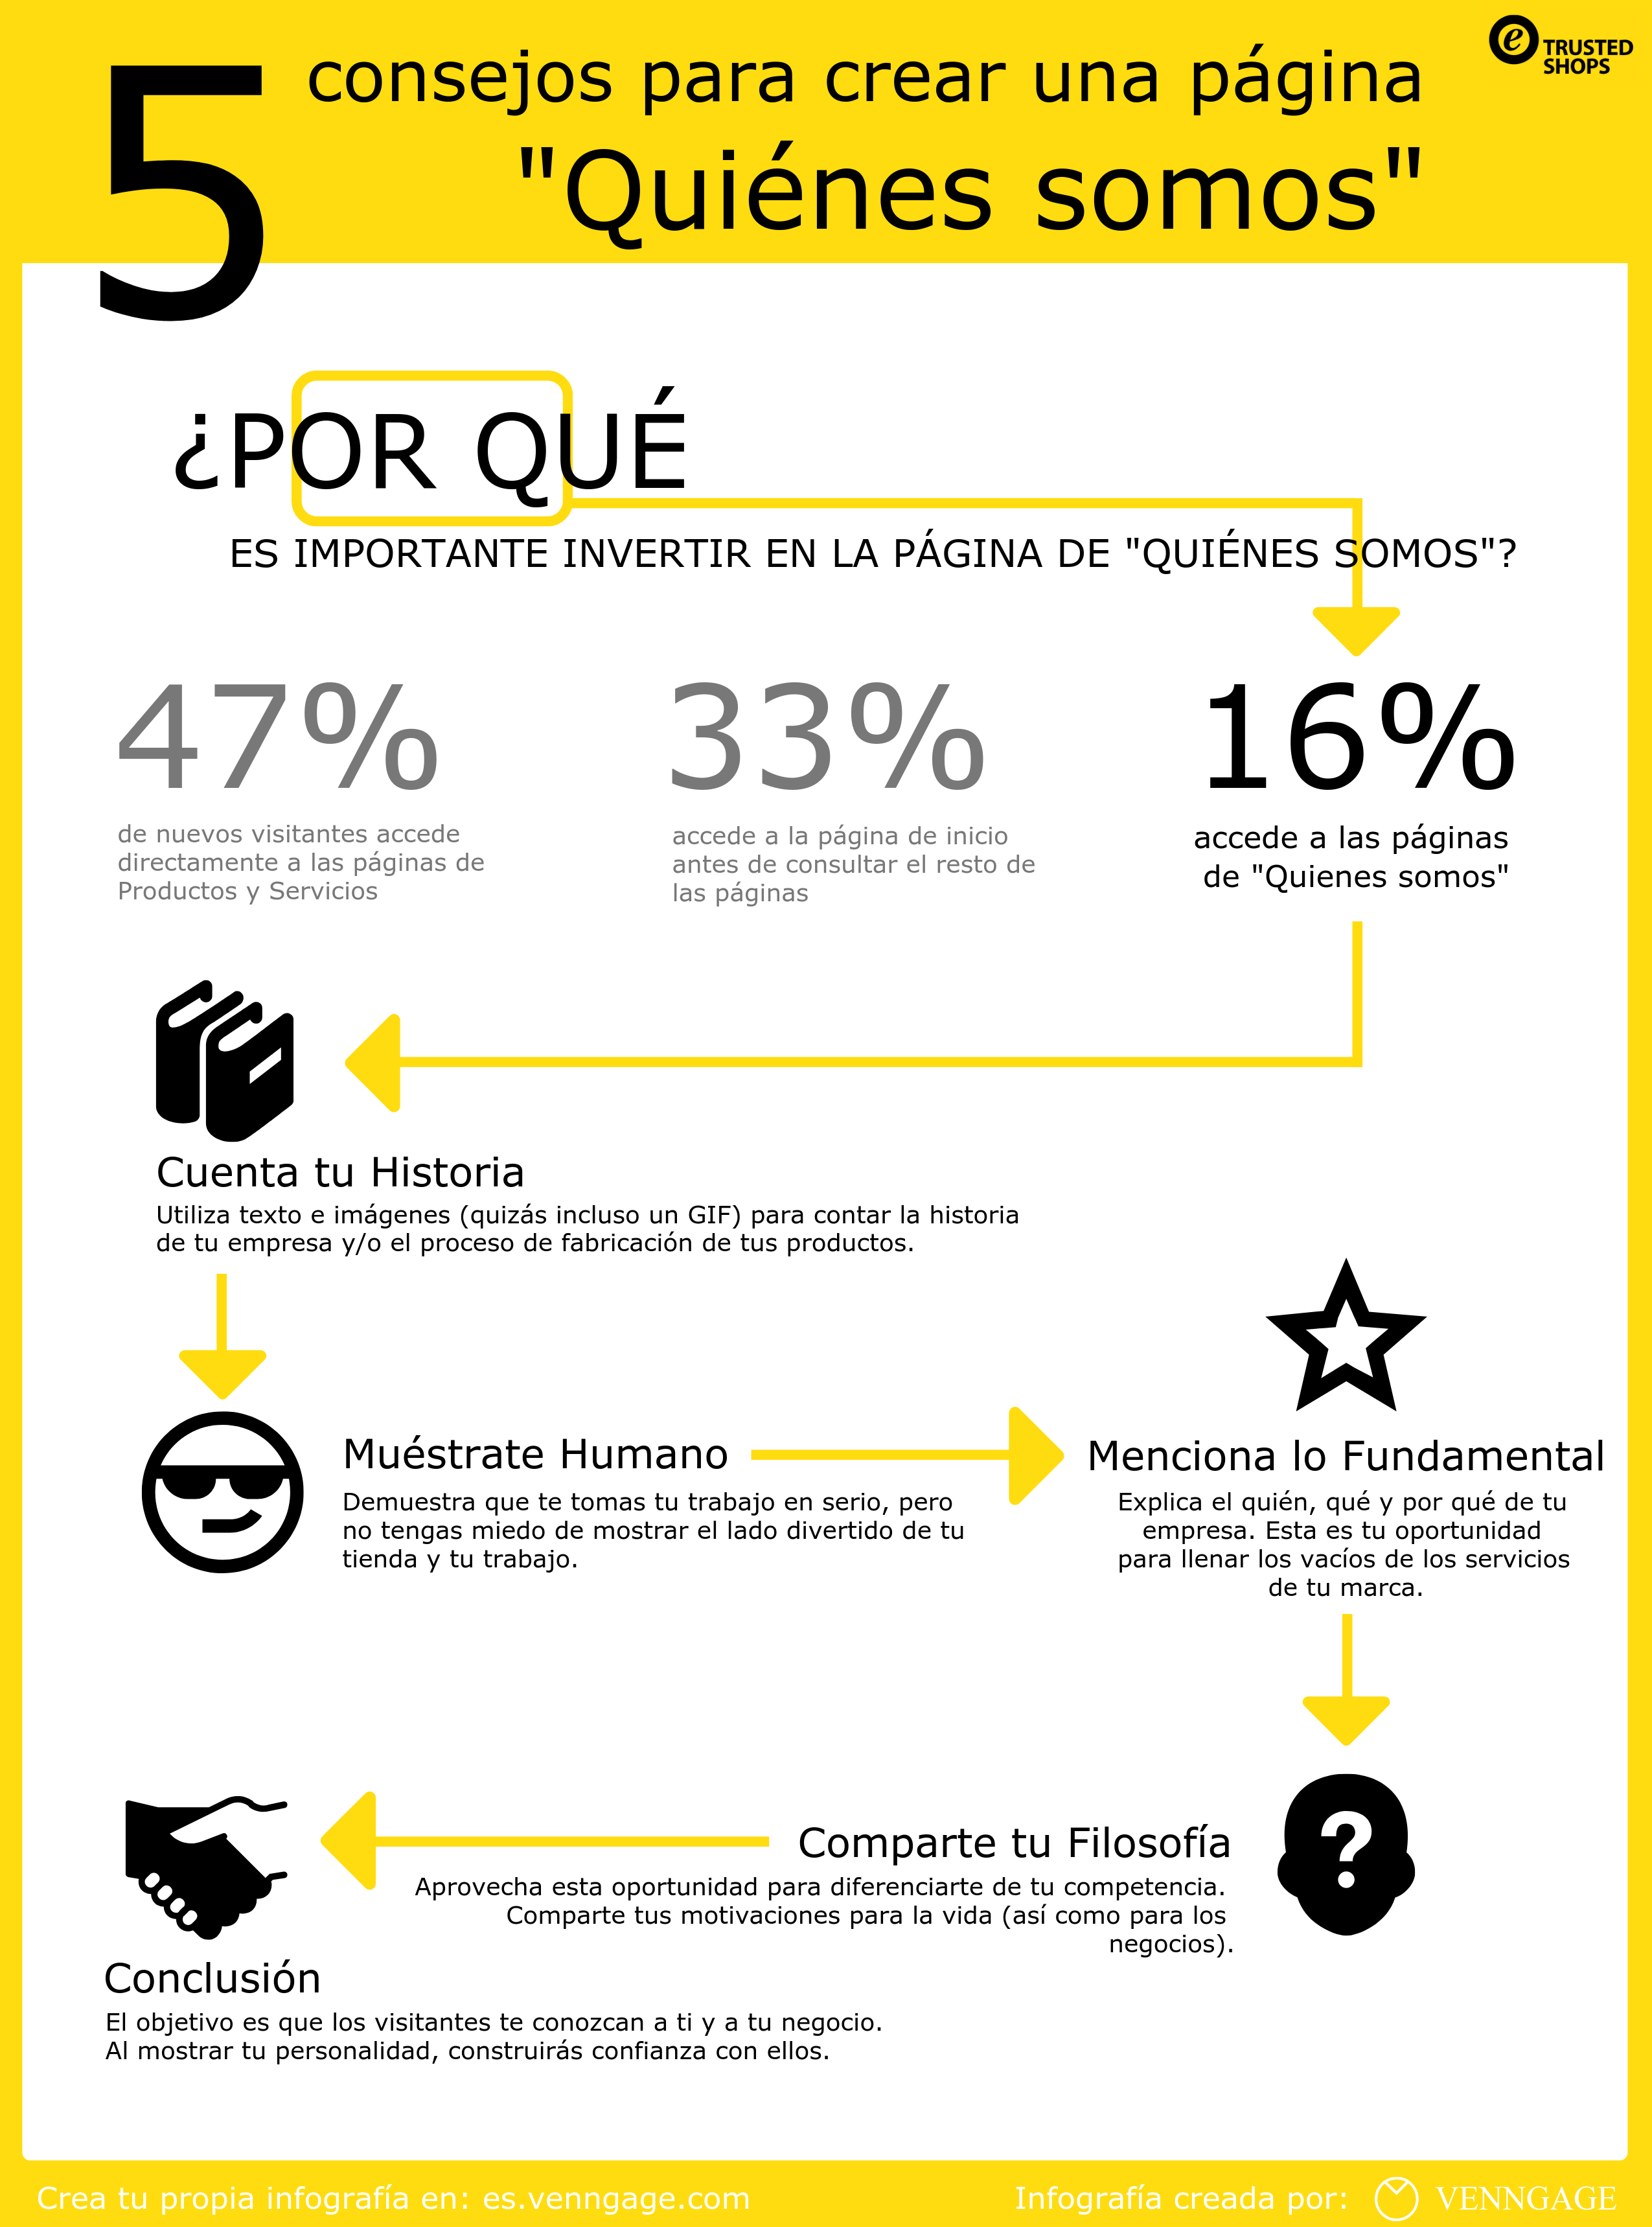 Trusted Shops_5things_infographic_ES